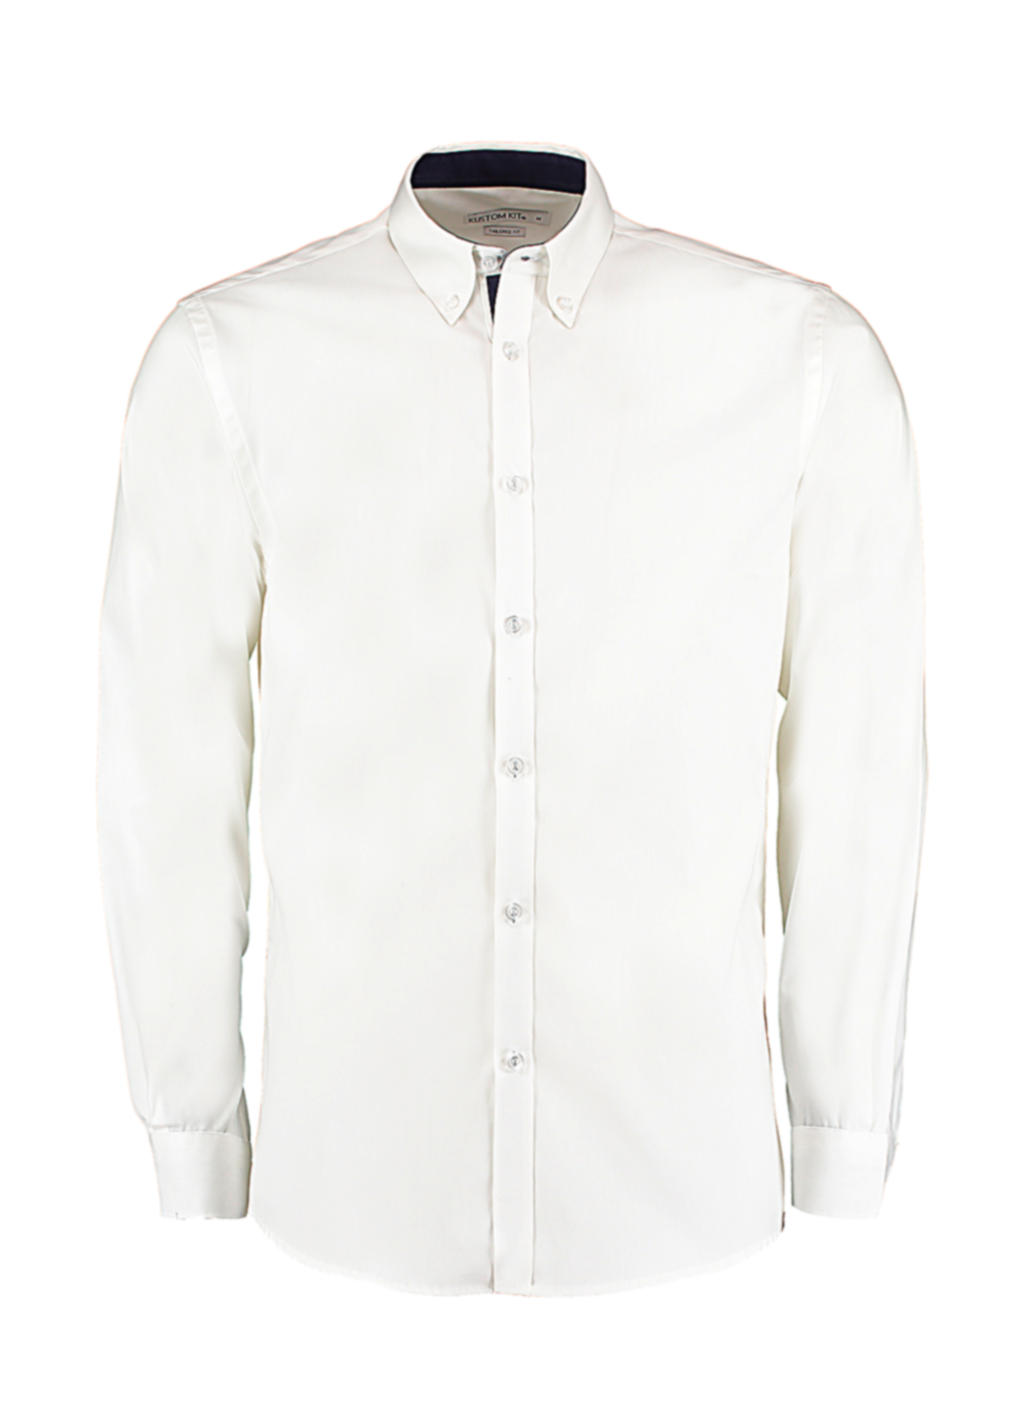 Contrast Premium Oxford Button Down Shirt LS